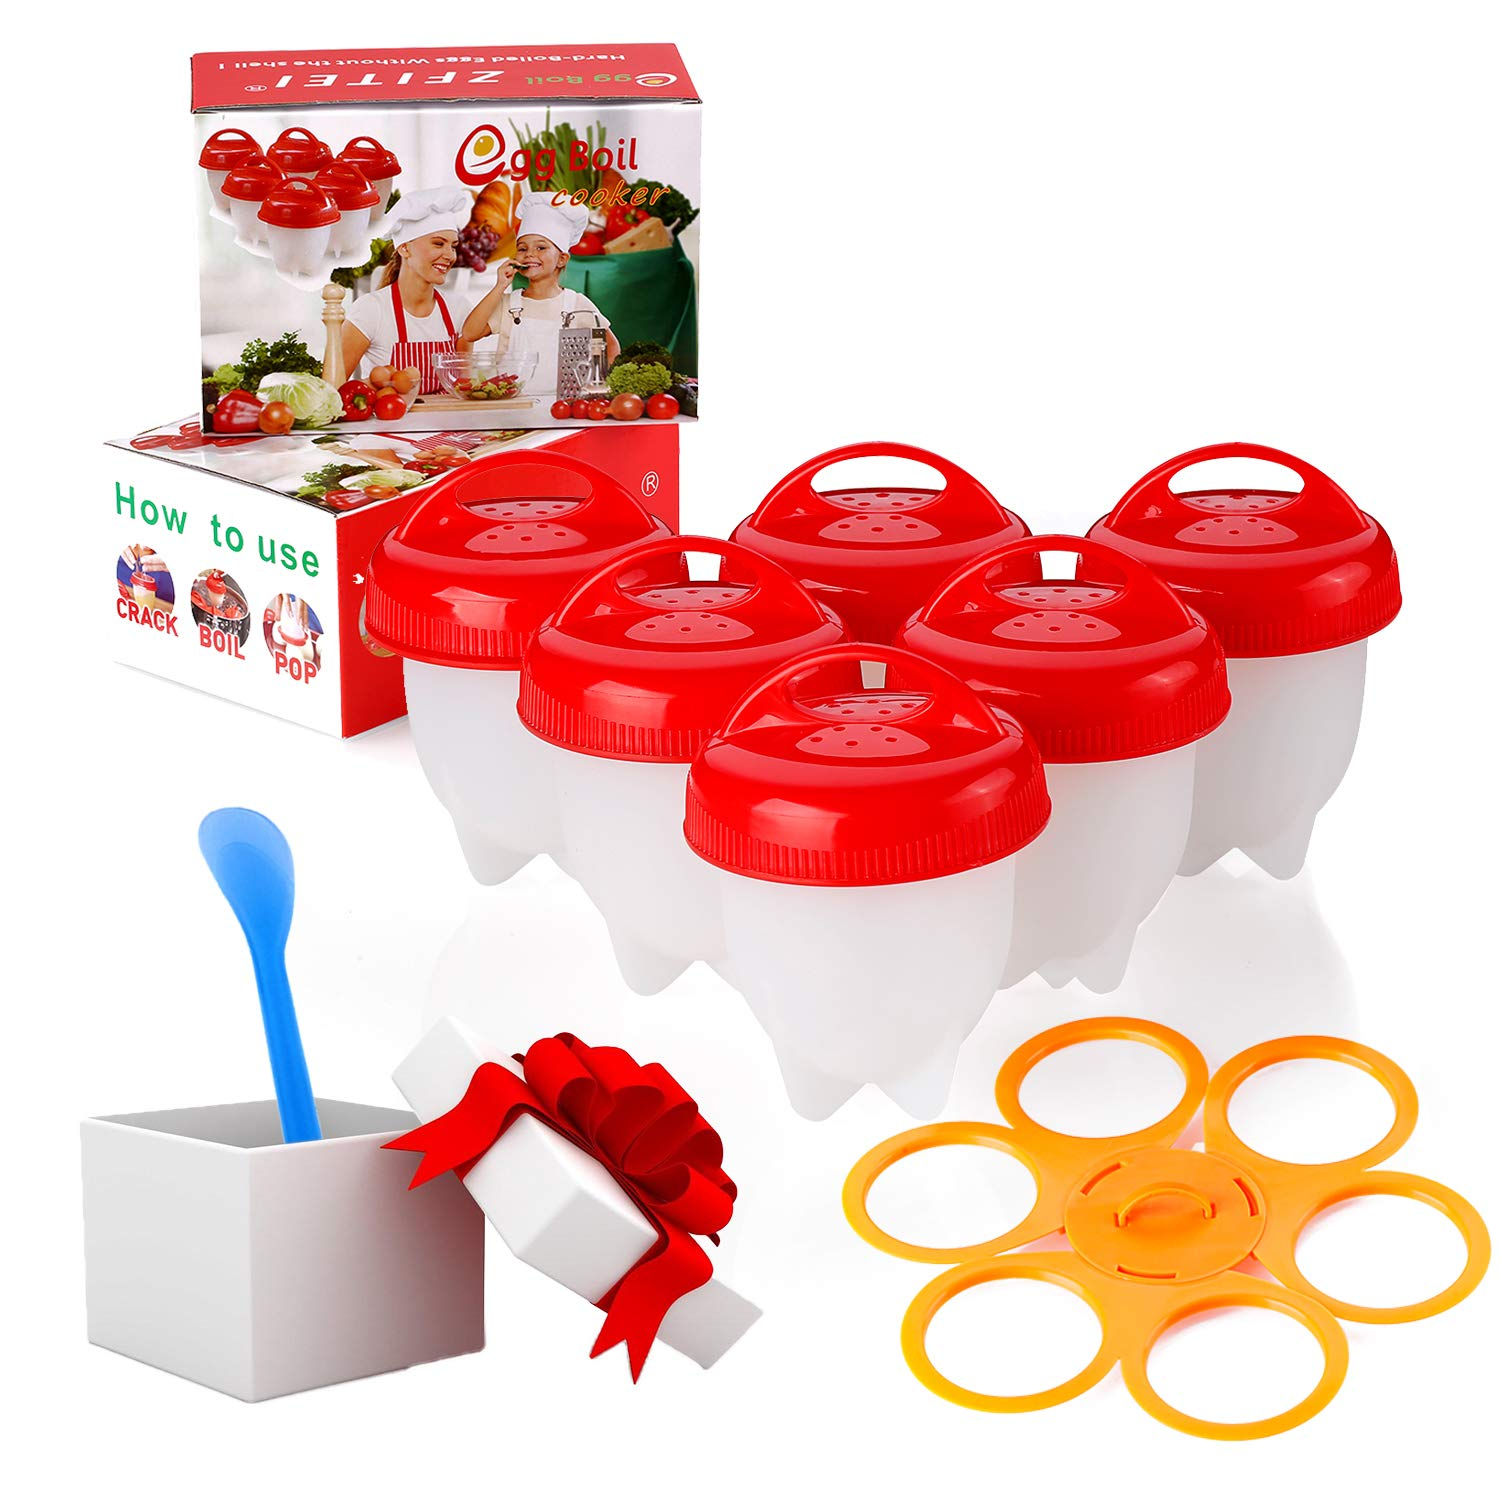 Upgrade Version Egg Cooker holder and Egg Cooker 6pack,Pls watch Real test video, Boiled Eggs No shell,hard&Soft Maker,BPA Free,Non Stick Silicone,Apply to Poacher, Boilead, Steamer.